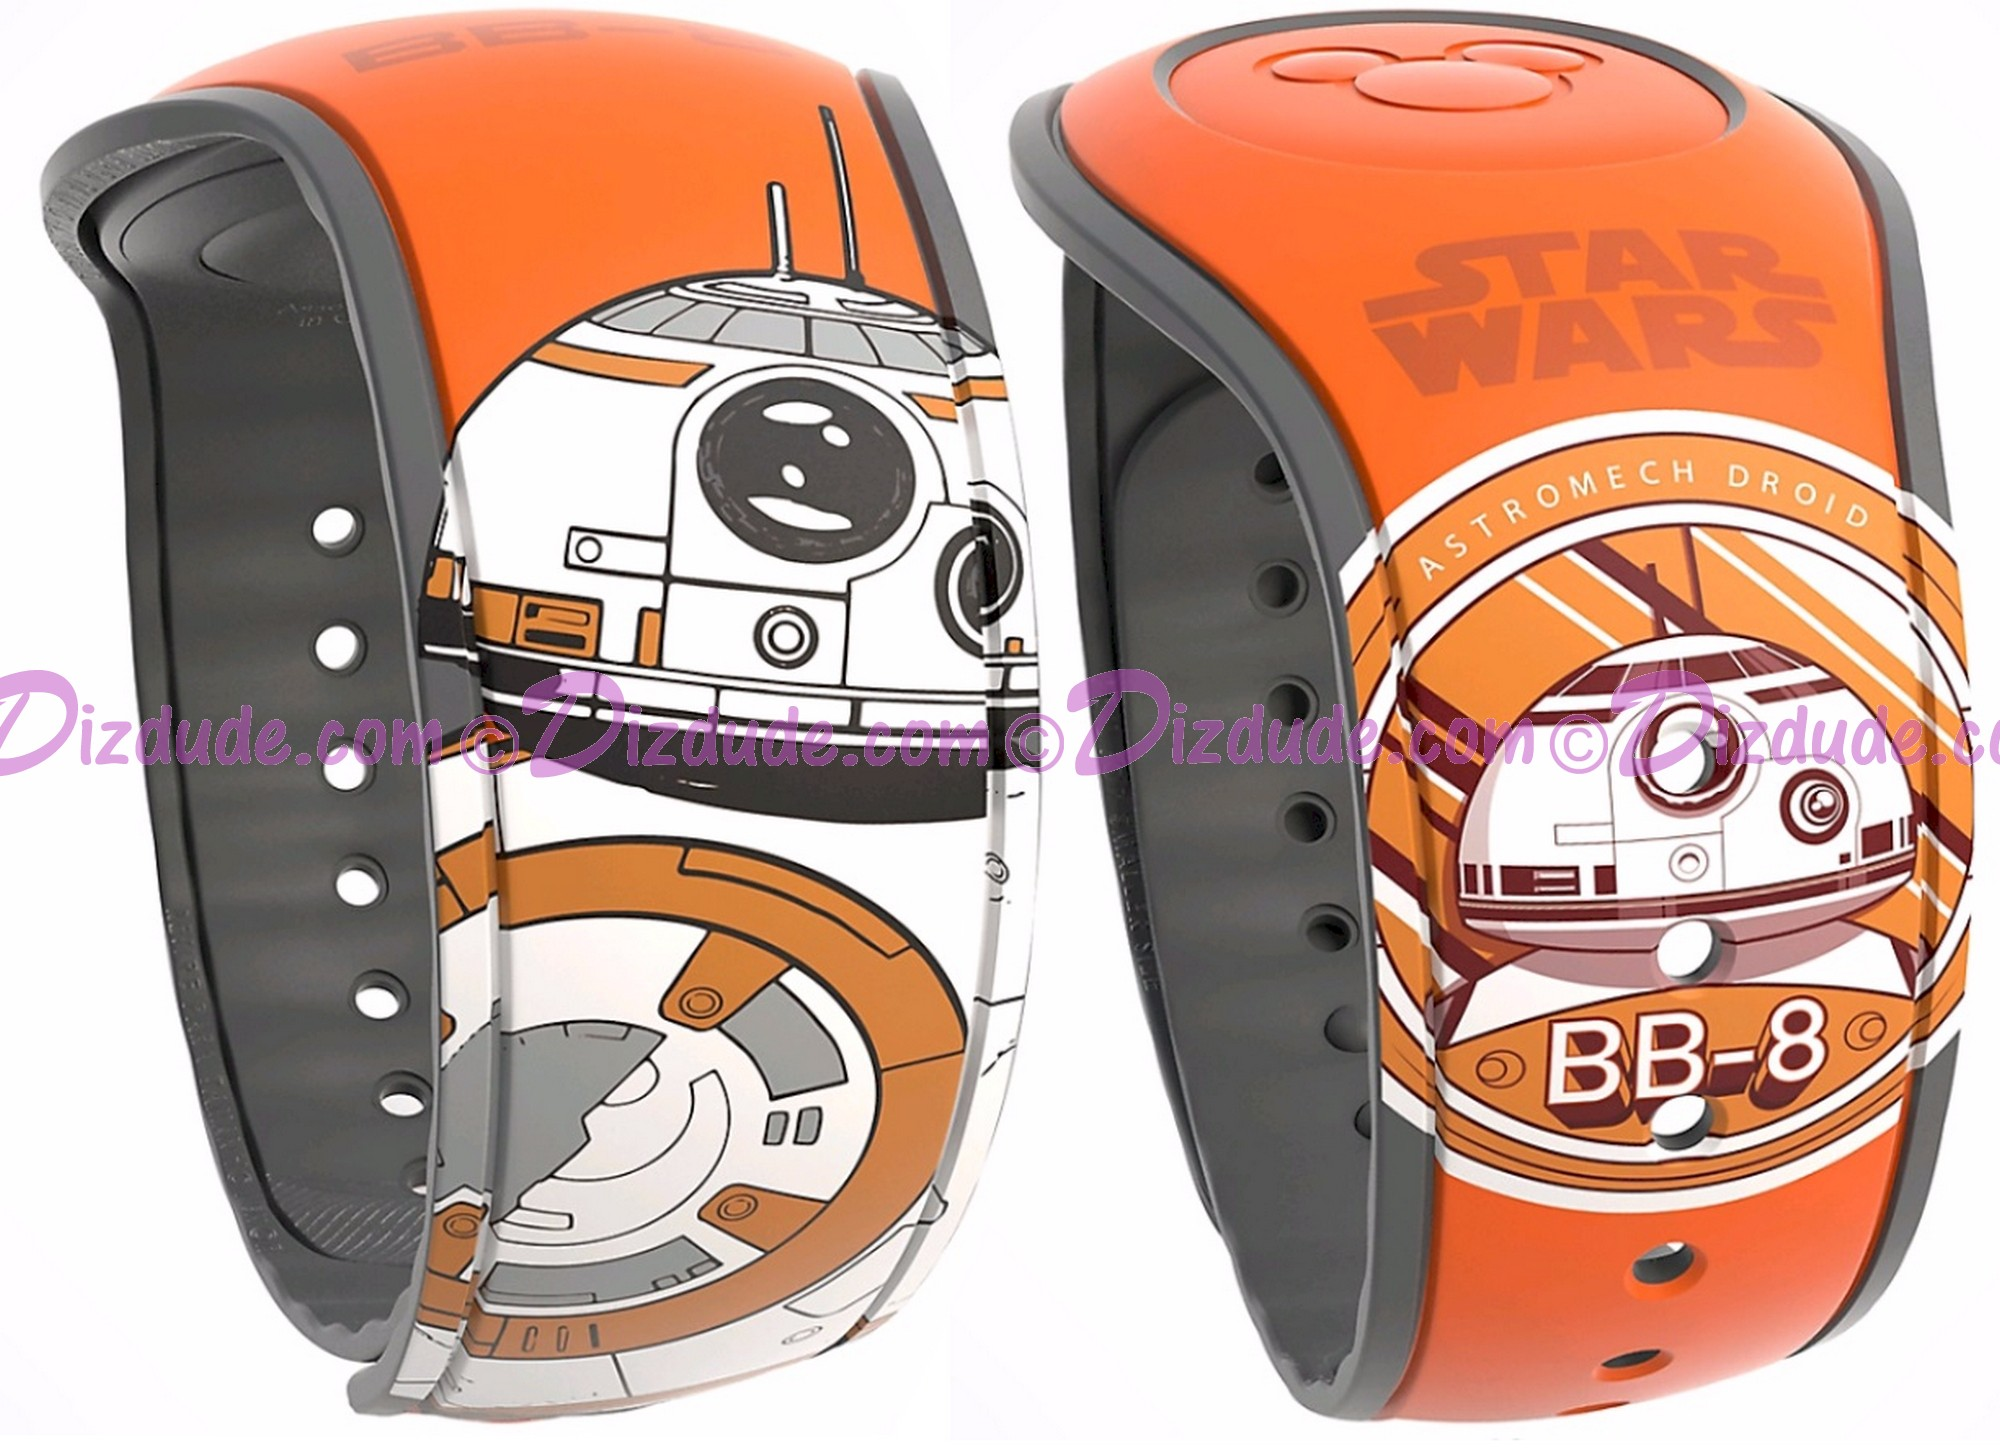 Star Wars: The Force Awakens BB-8 Graphic Magic Band 2 - Disney World Exclusive © Dizdude.com